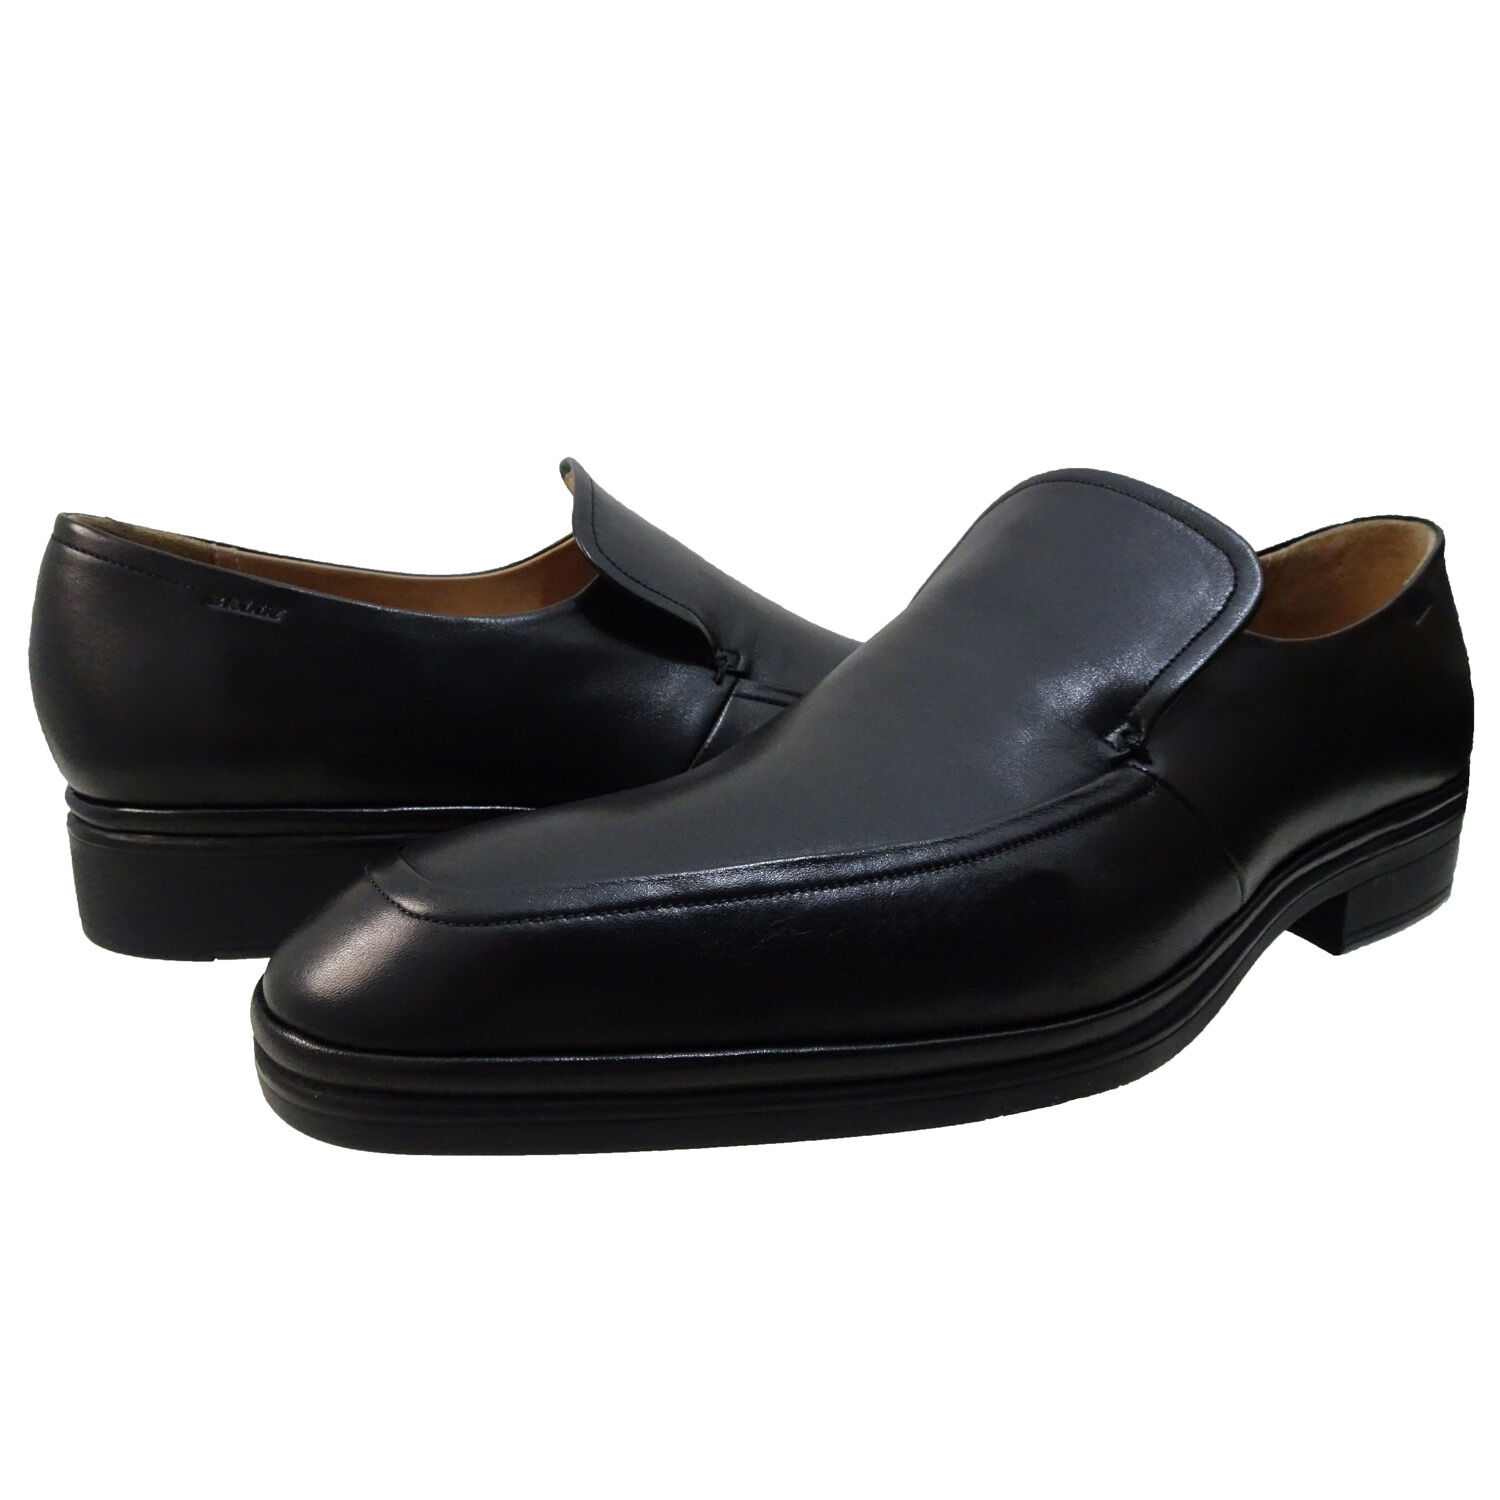 Bally Mens Nexaro Slip On Business Casual Venetian Loafers Fashion Dress shoes